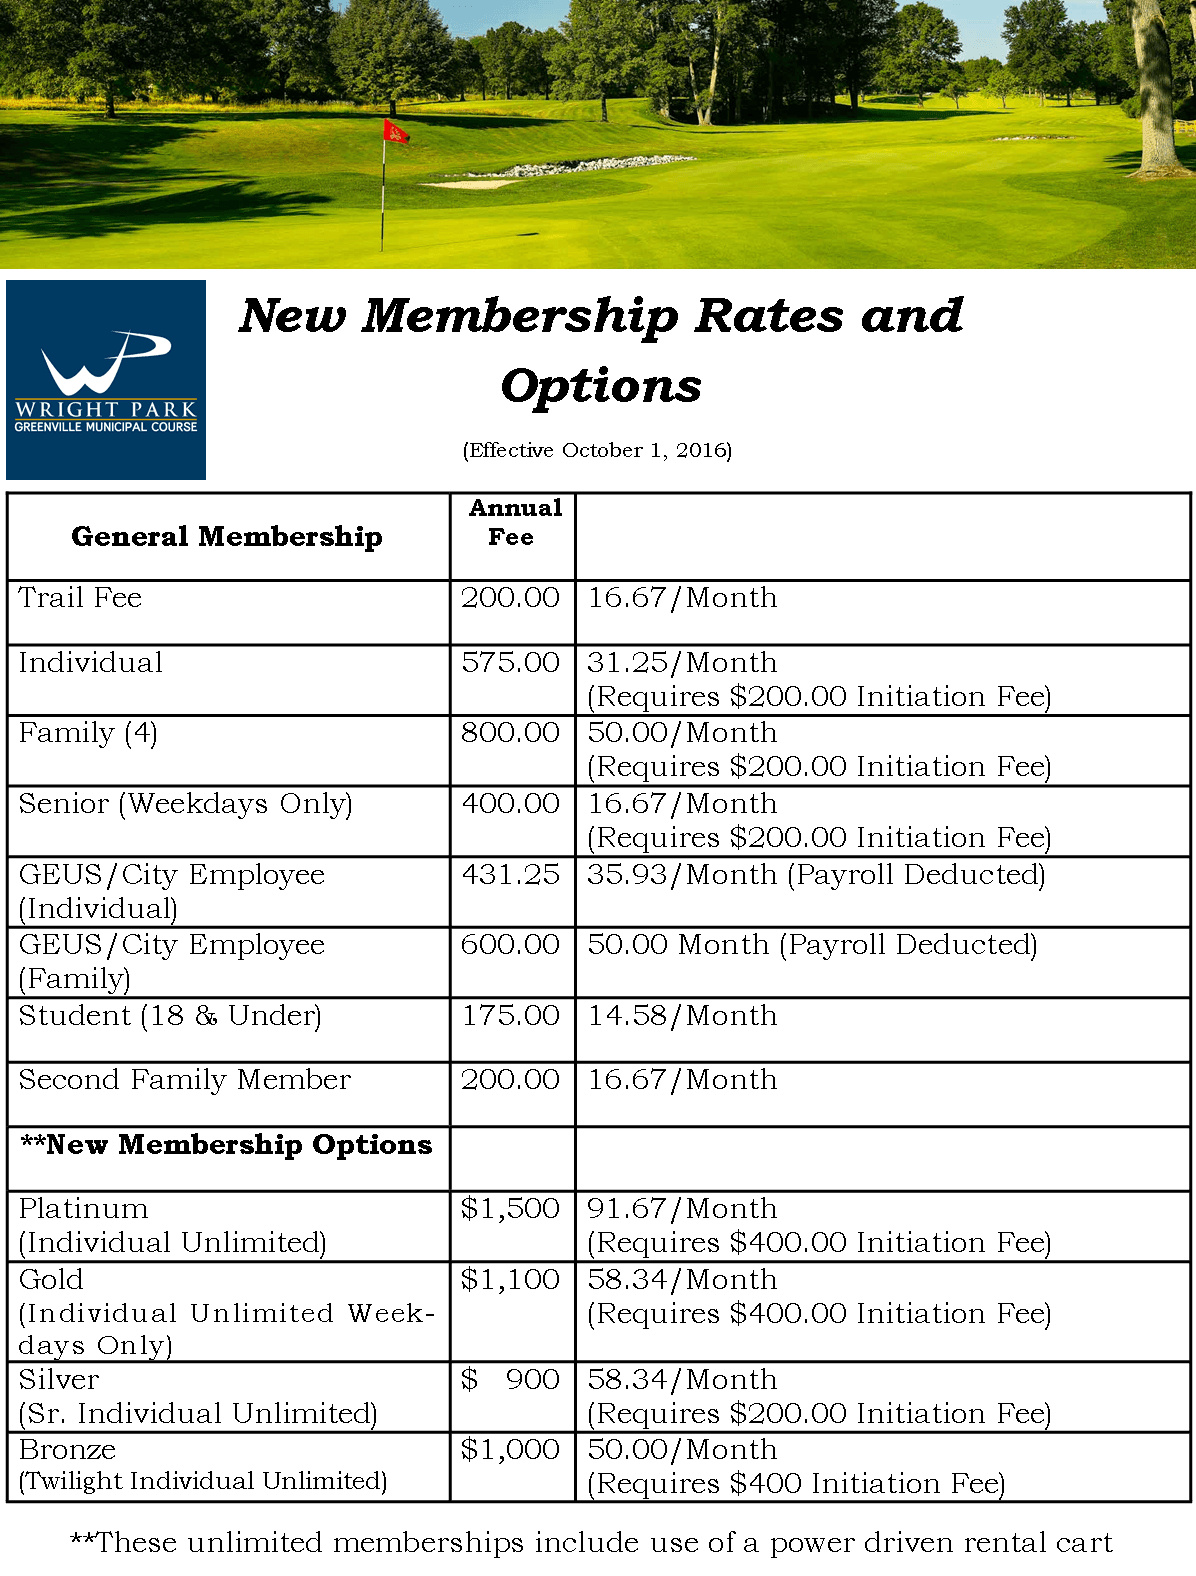 Membership fees for golf course